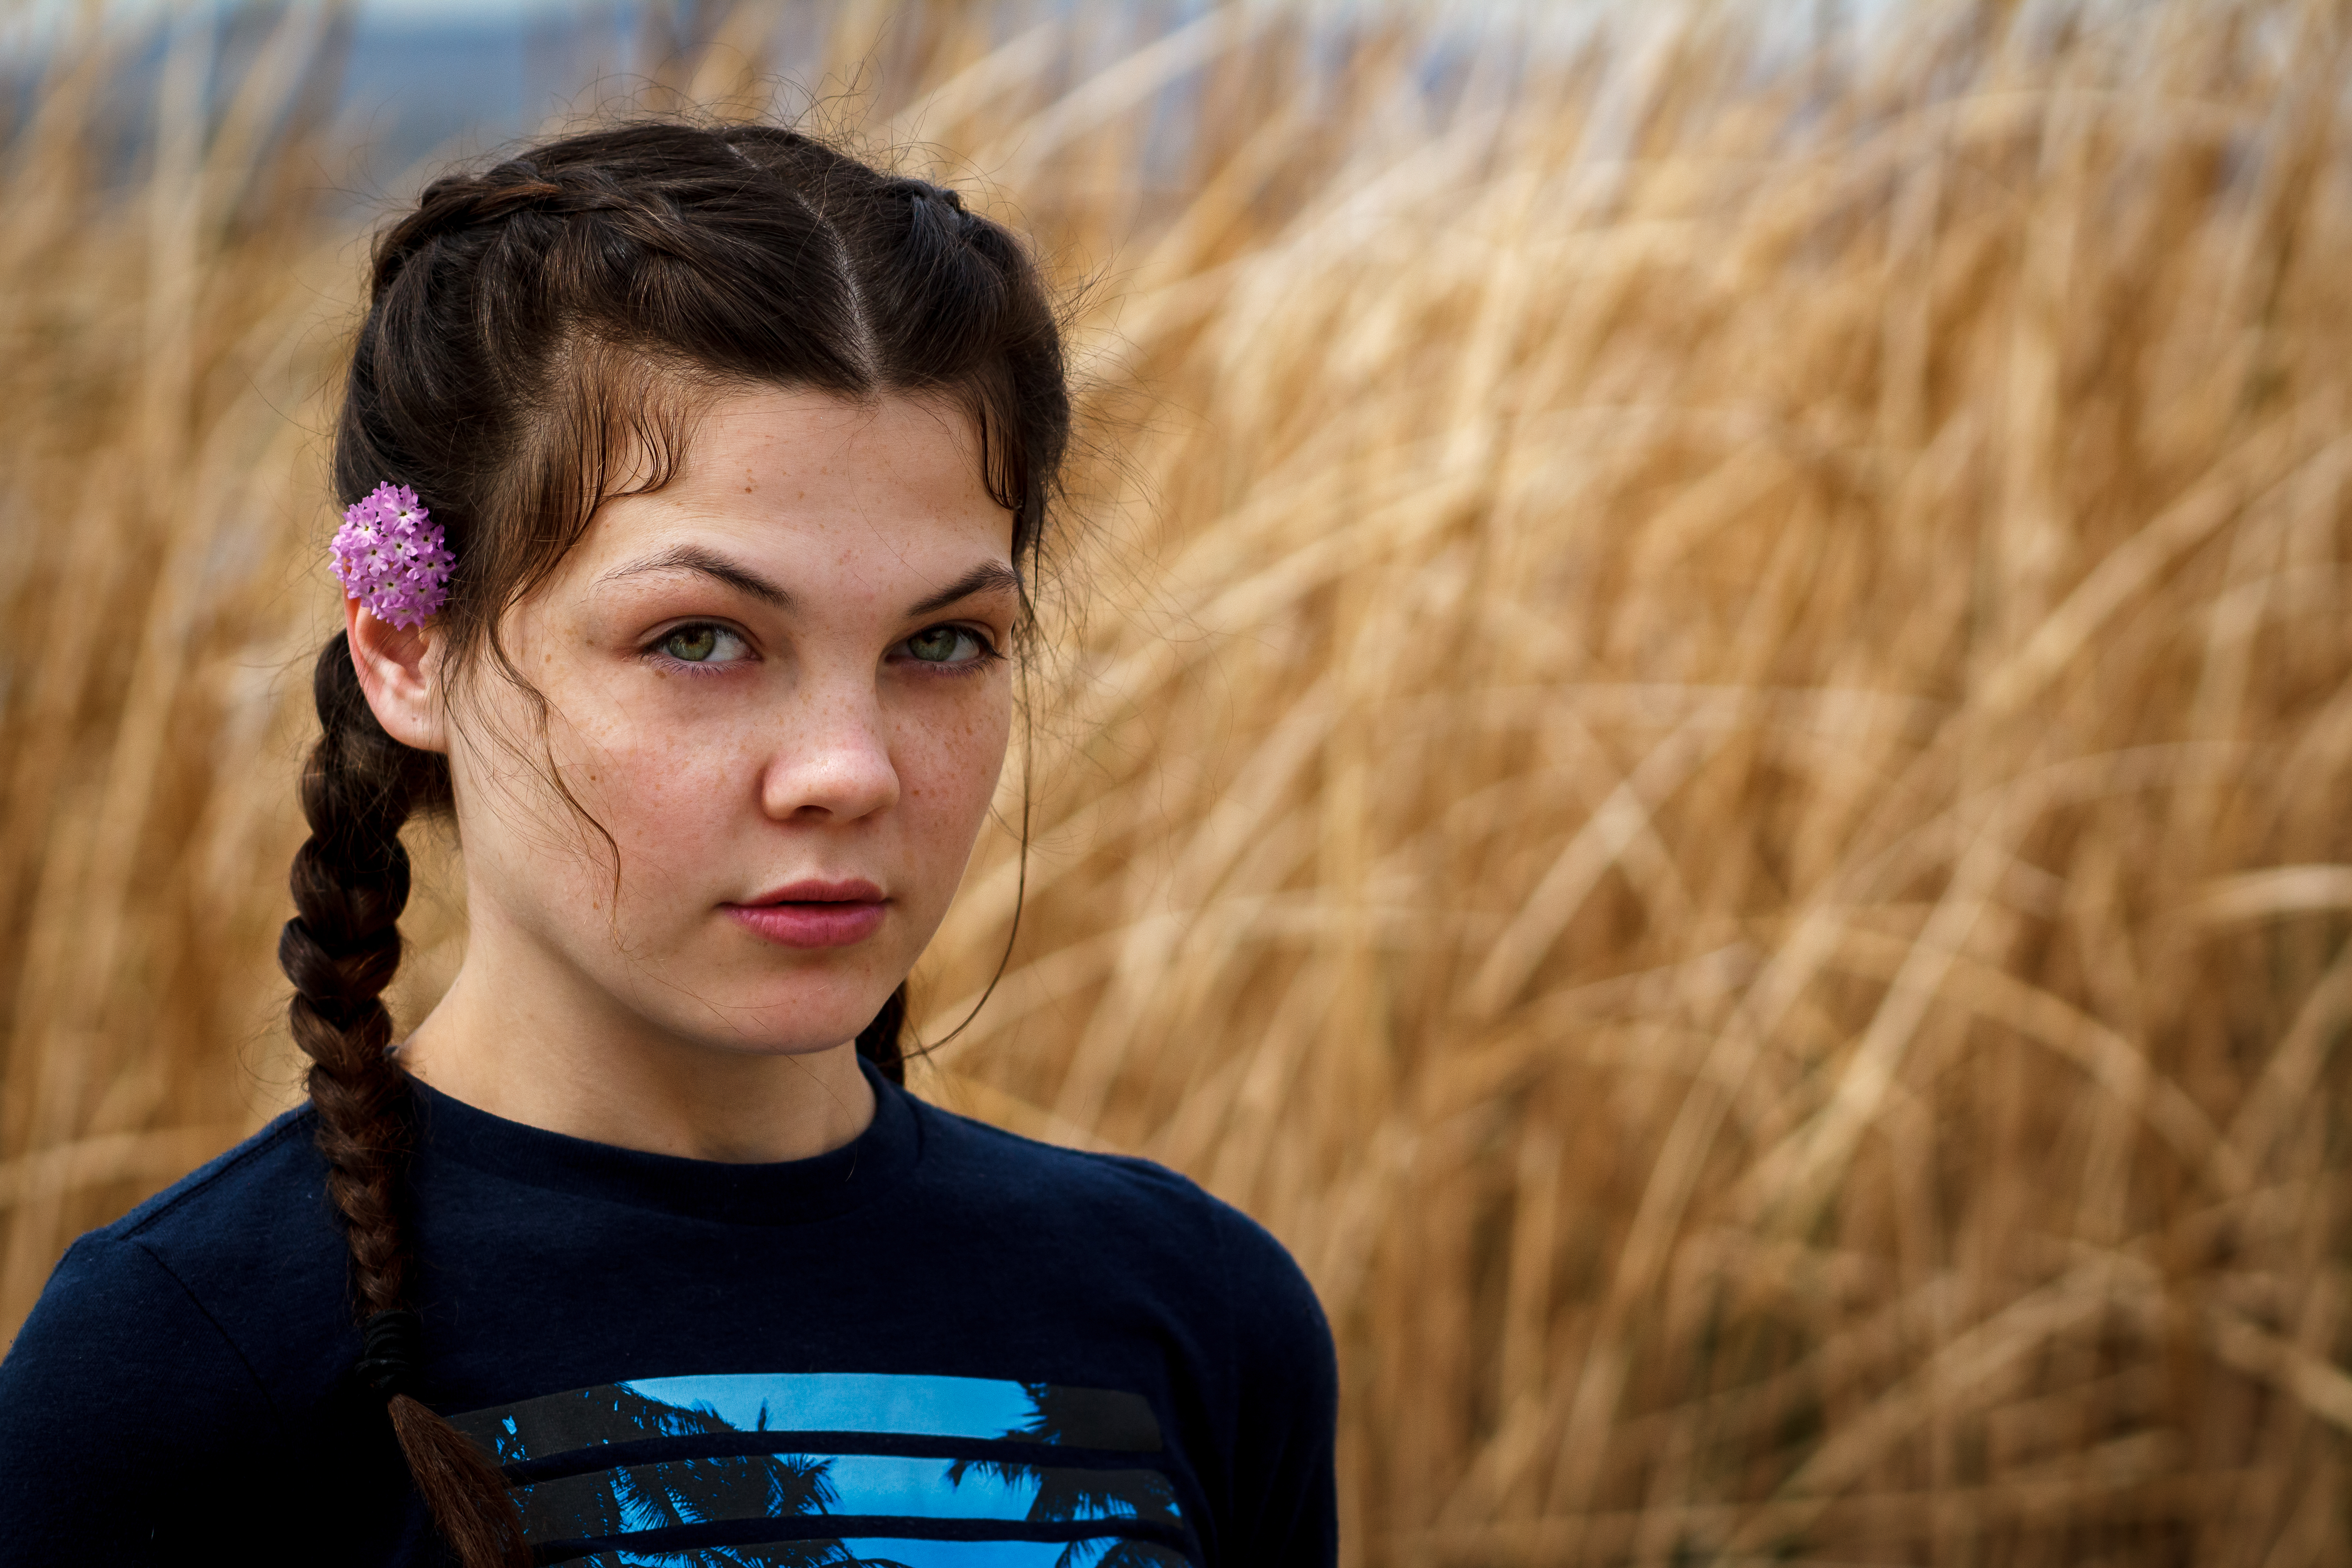 Woman wearing double braids with a flower in her hair posed in front of tall brown grass, with intense expression.